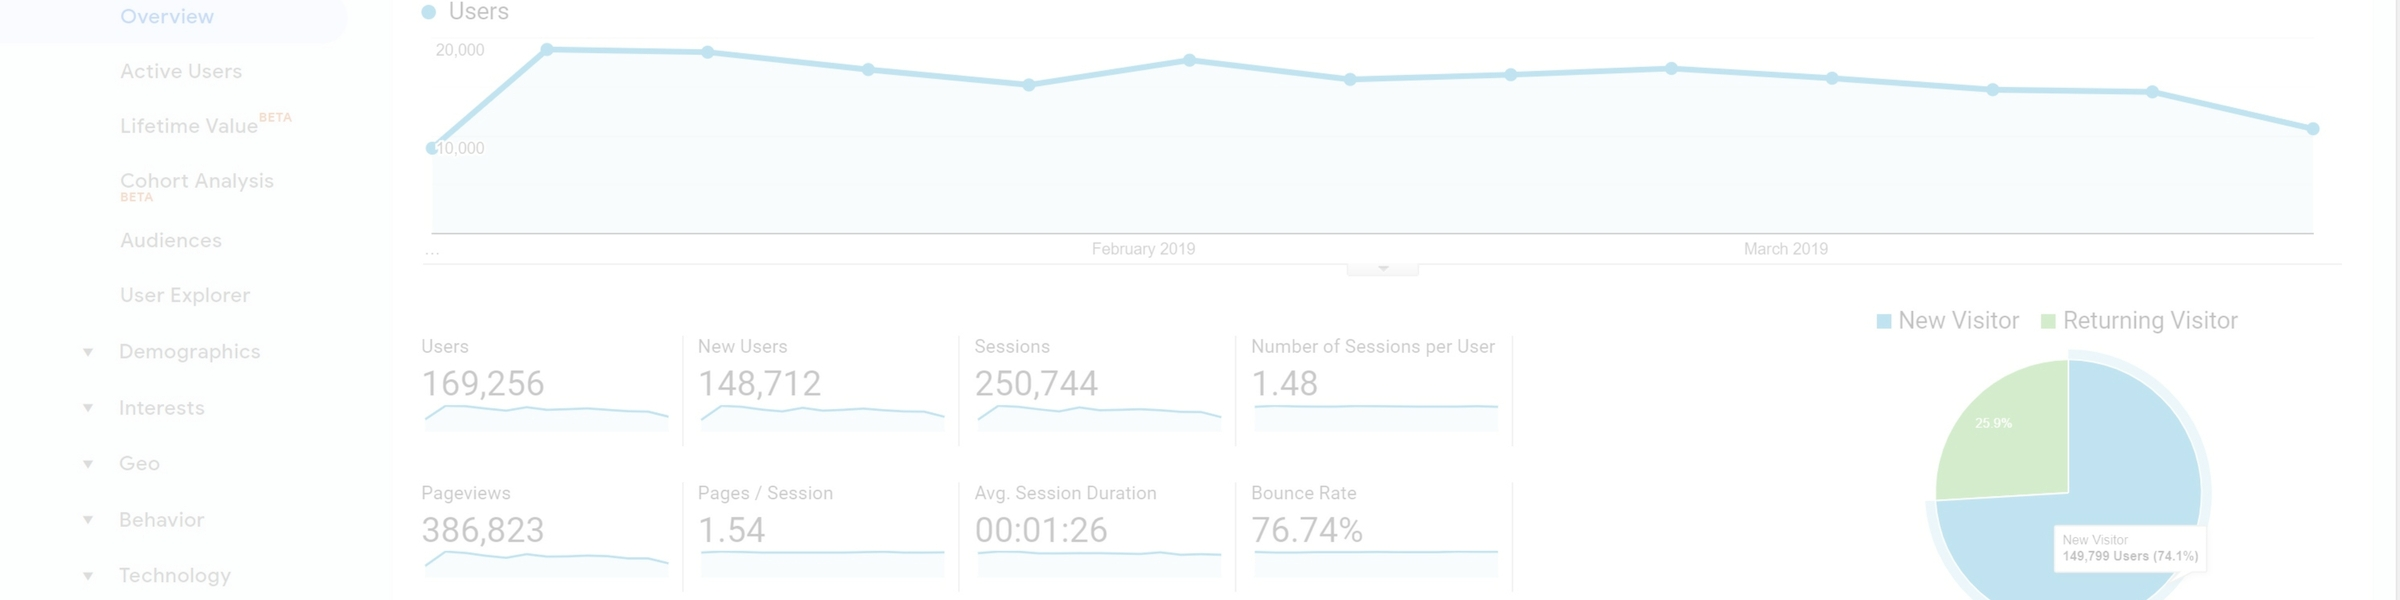 slider analytics screenshot 25